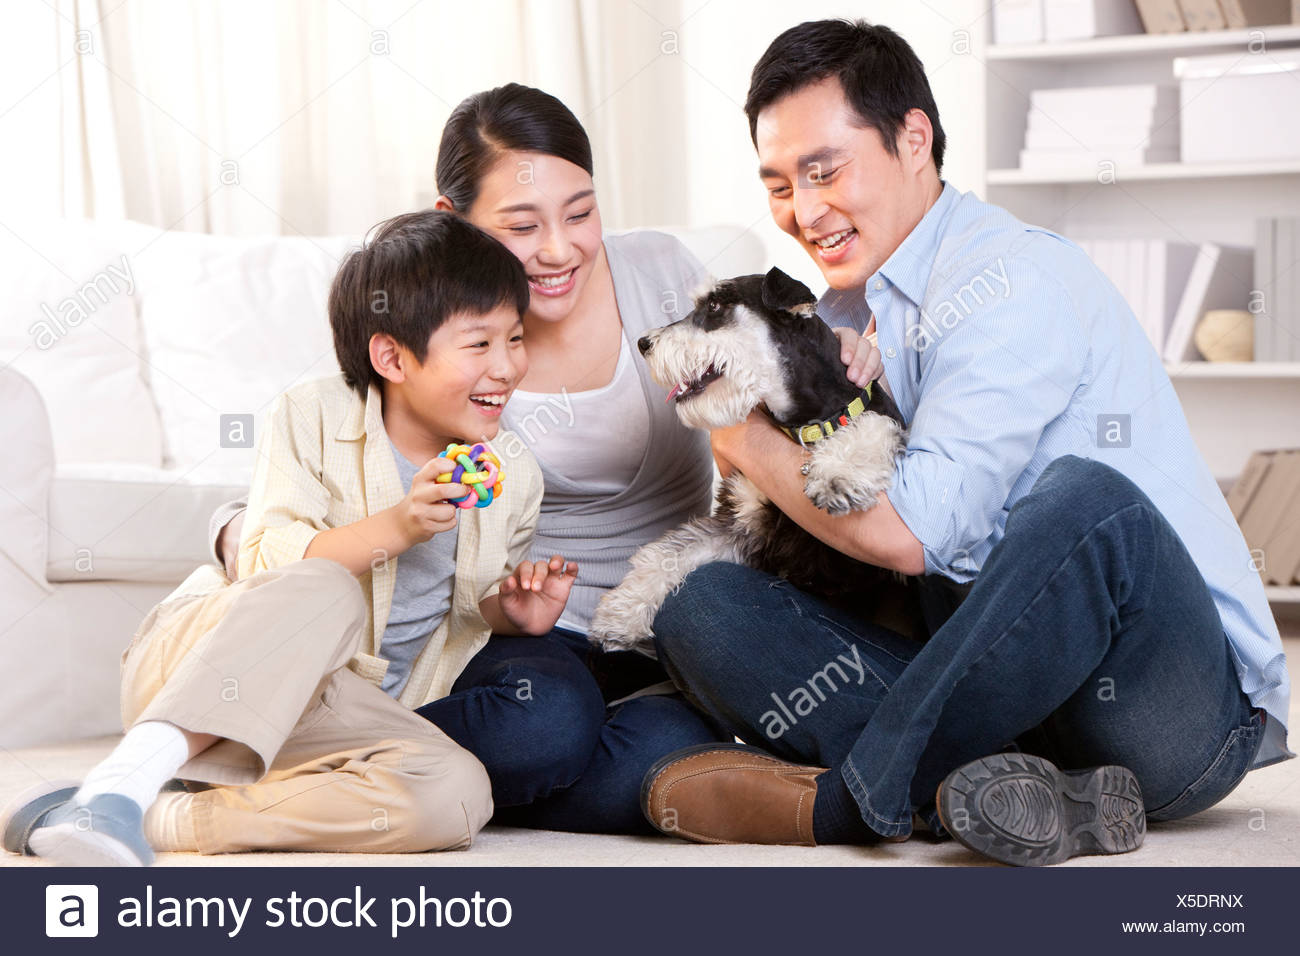 Family playing with a pet Schnauzer - Stock Image